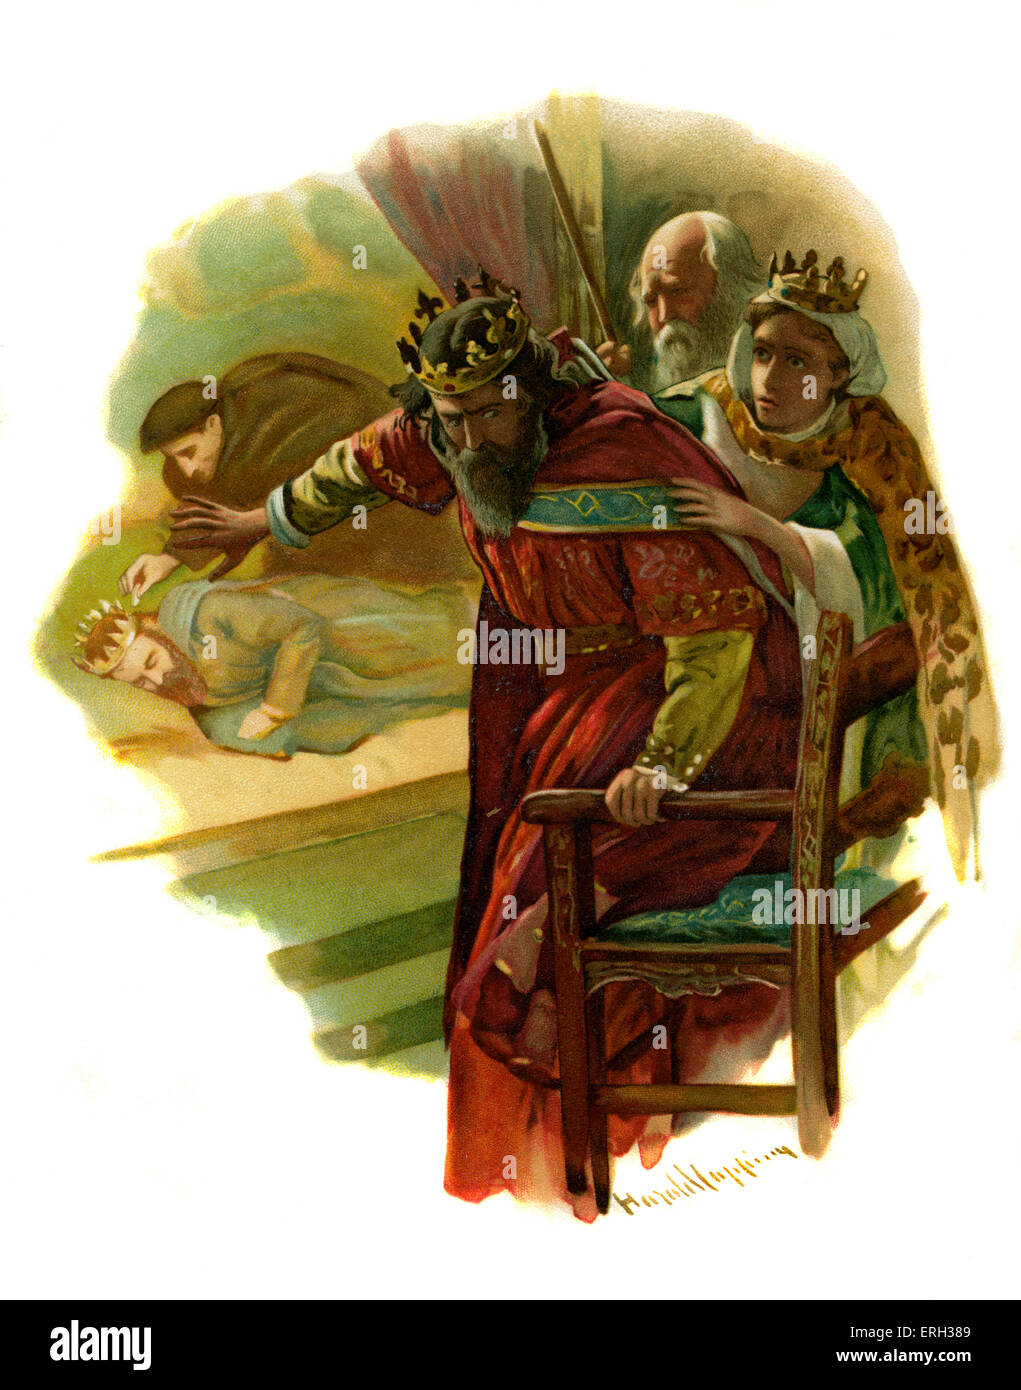 Claudius flees a re-enactment of the old king's murder in Hamlet, Prince of Denmark by William Shakespeare. - Stock Image